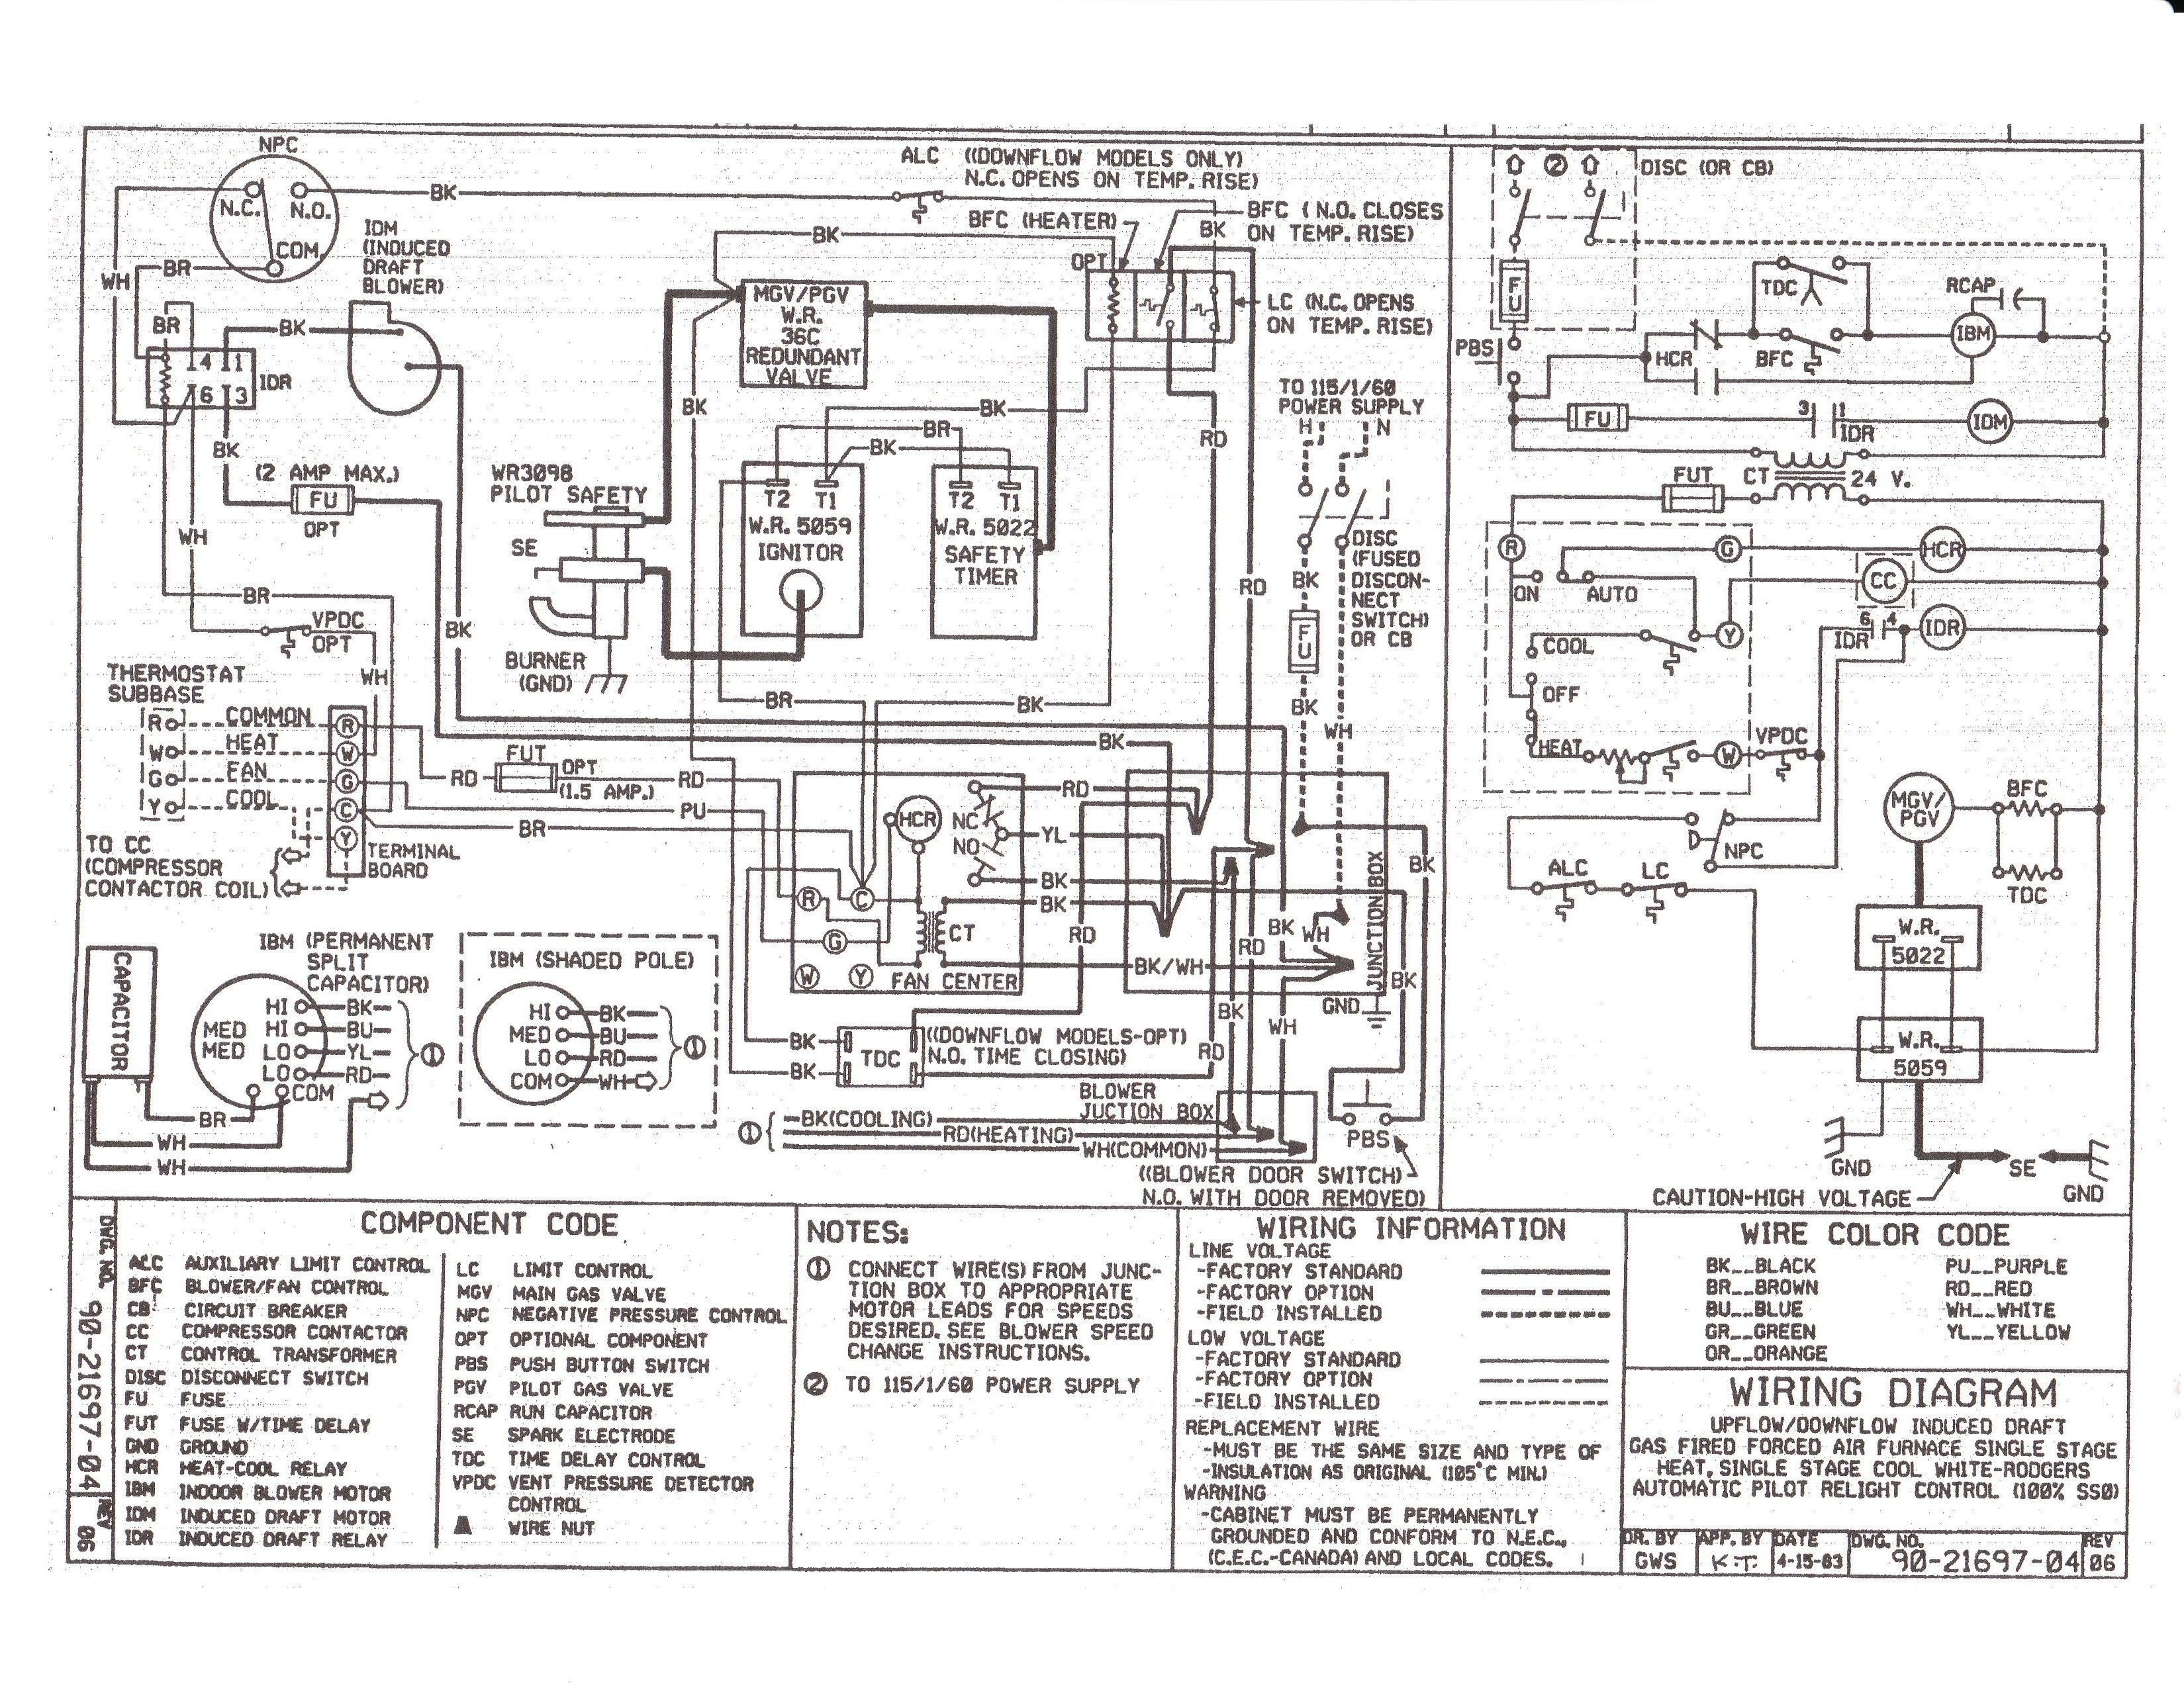 Best Of E2eb 015ha Wiring Diagram Electrical Wiring Diagram Electric Furnace Thermostat Wiring